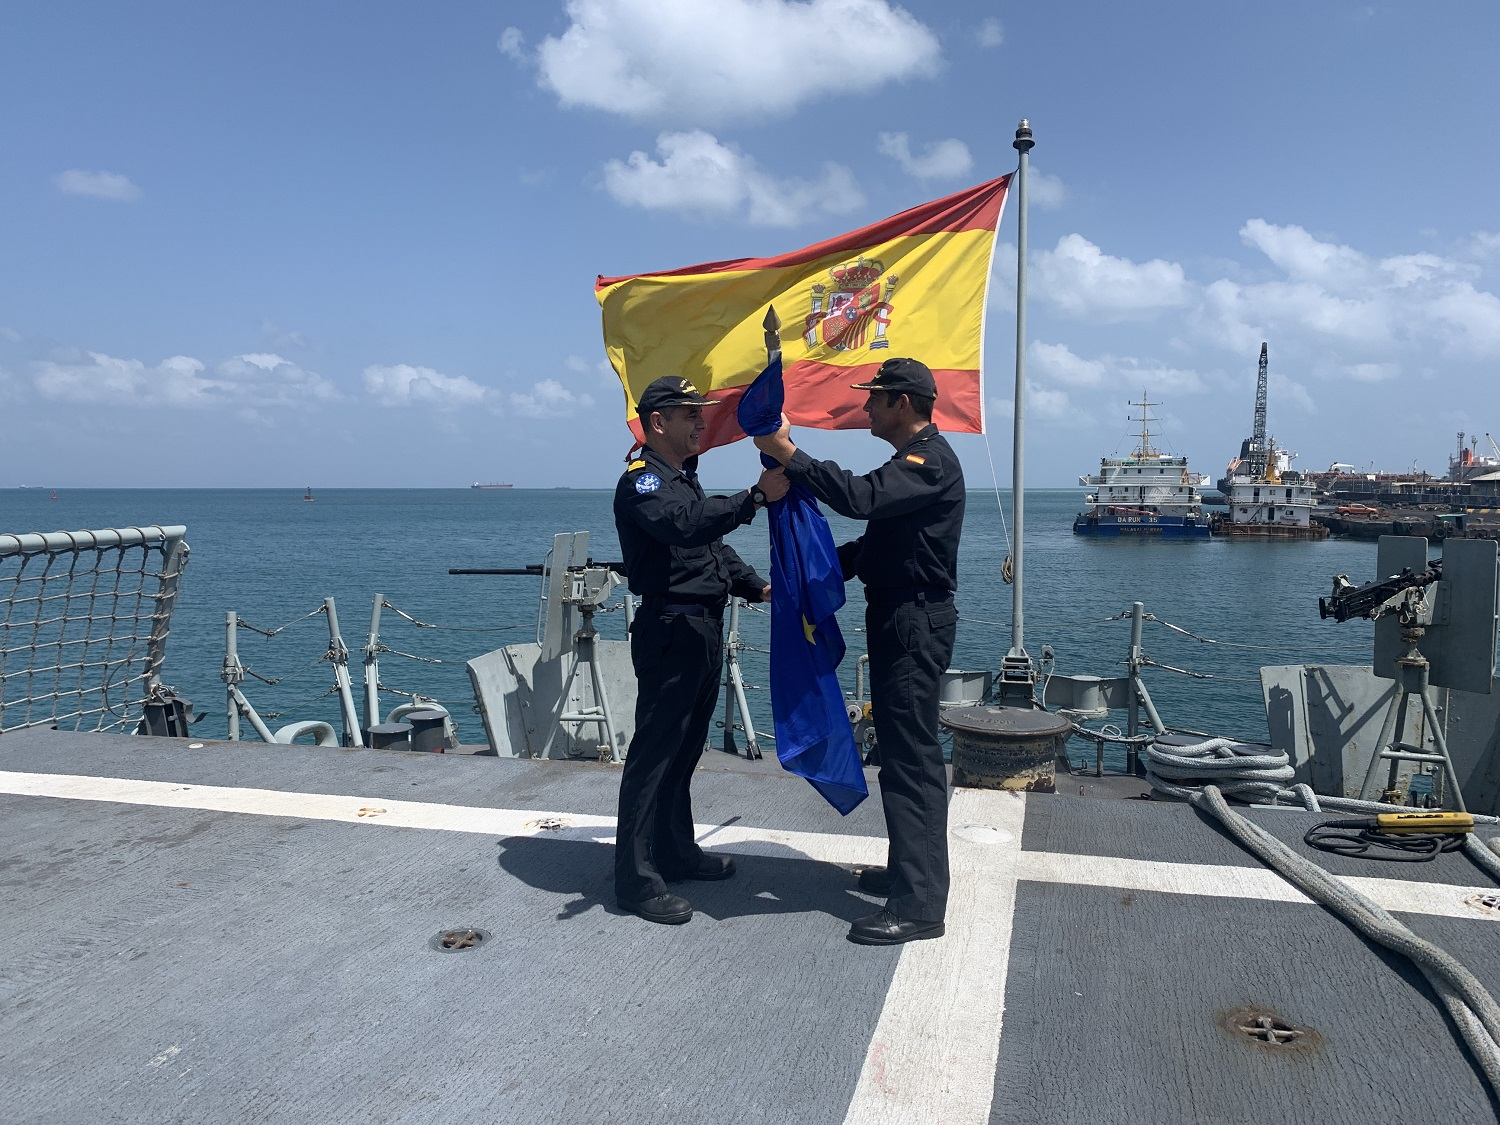 The frigate 'Numancia' takes over from 'Victoria' in Operation Atalanta